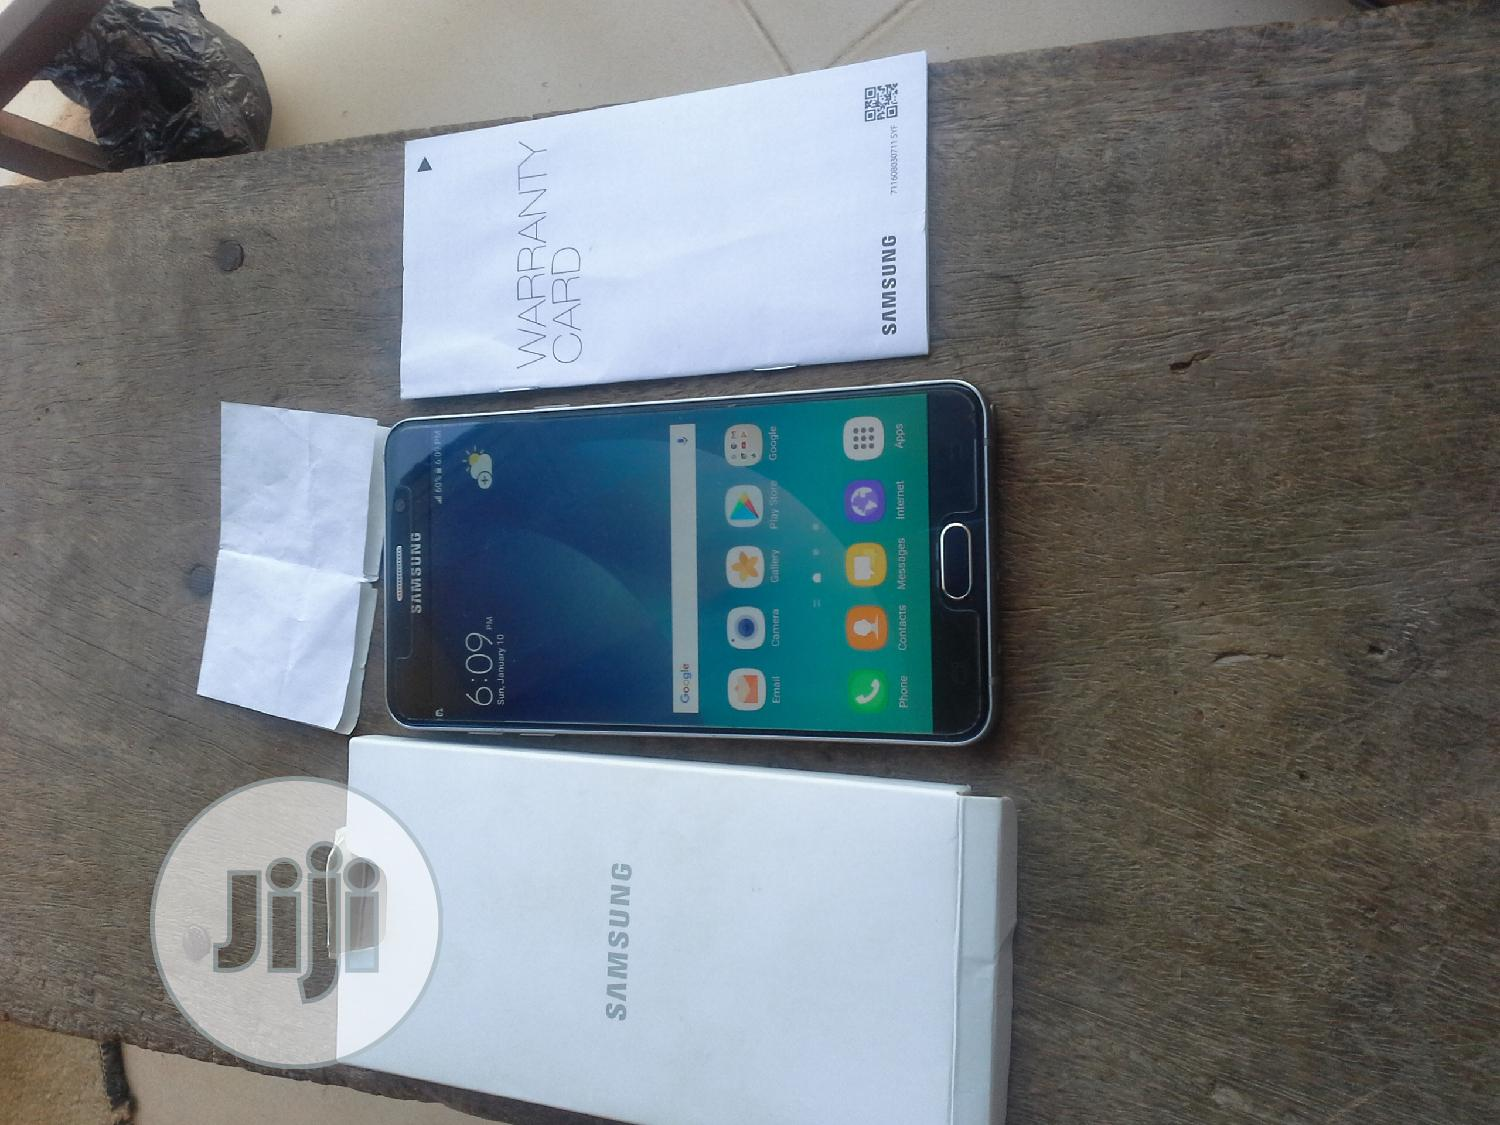 Samsung Galaxy Note 5 32 GB Gray | Mobile Phones for sale in Ilorin East, Kwara State, Nigeria